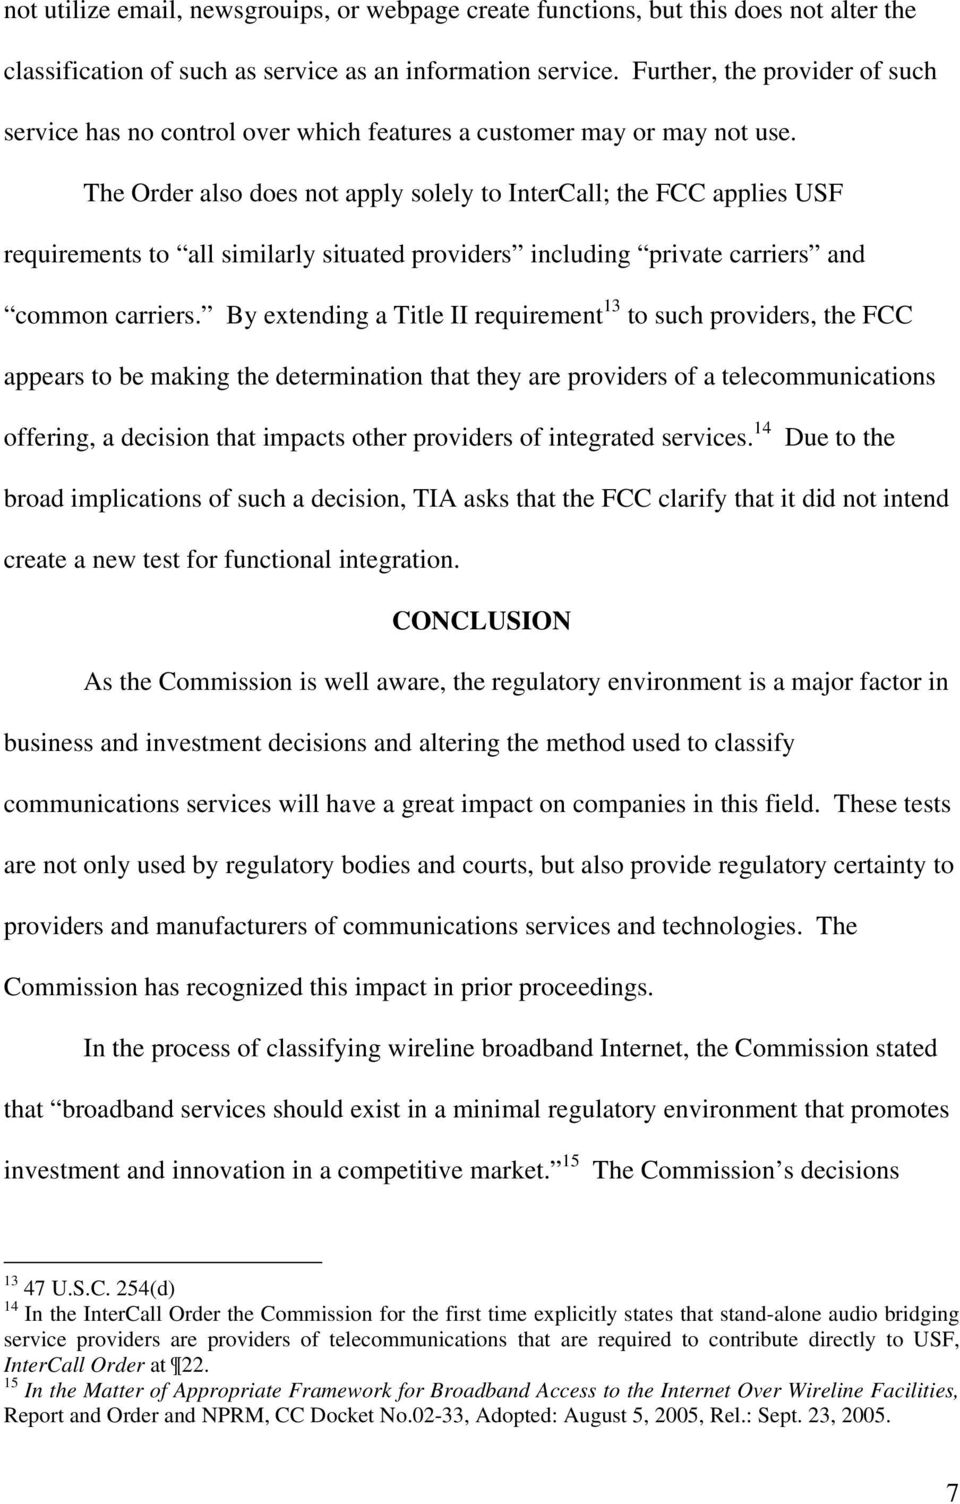 The Order also does not apply solely to InterCall; the FCC applies USF requirements to all similarly situated providers including private carriers and common carriers.